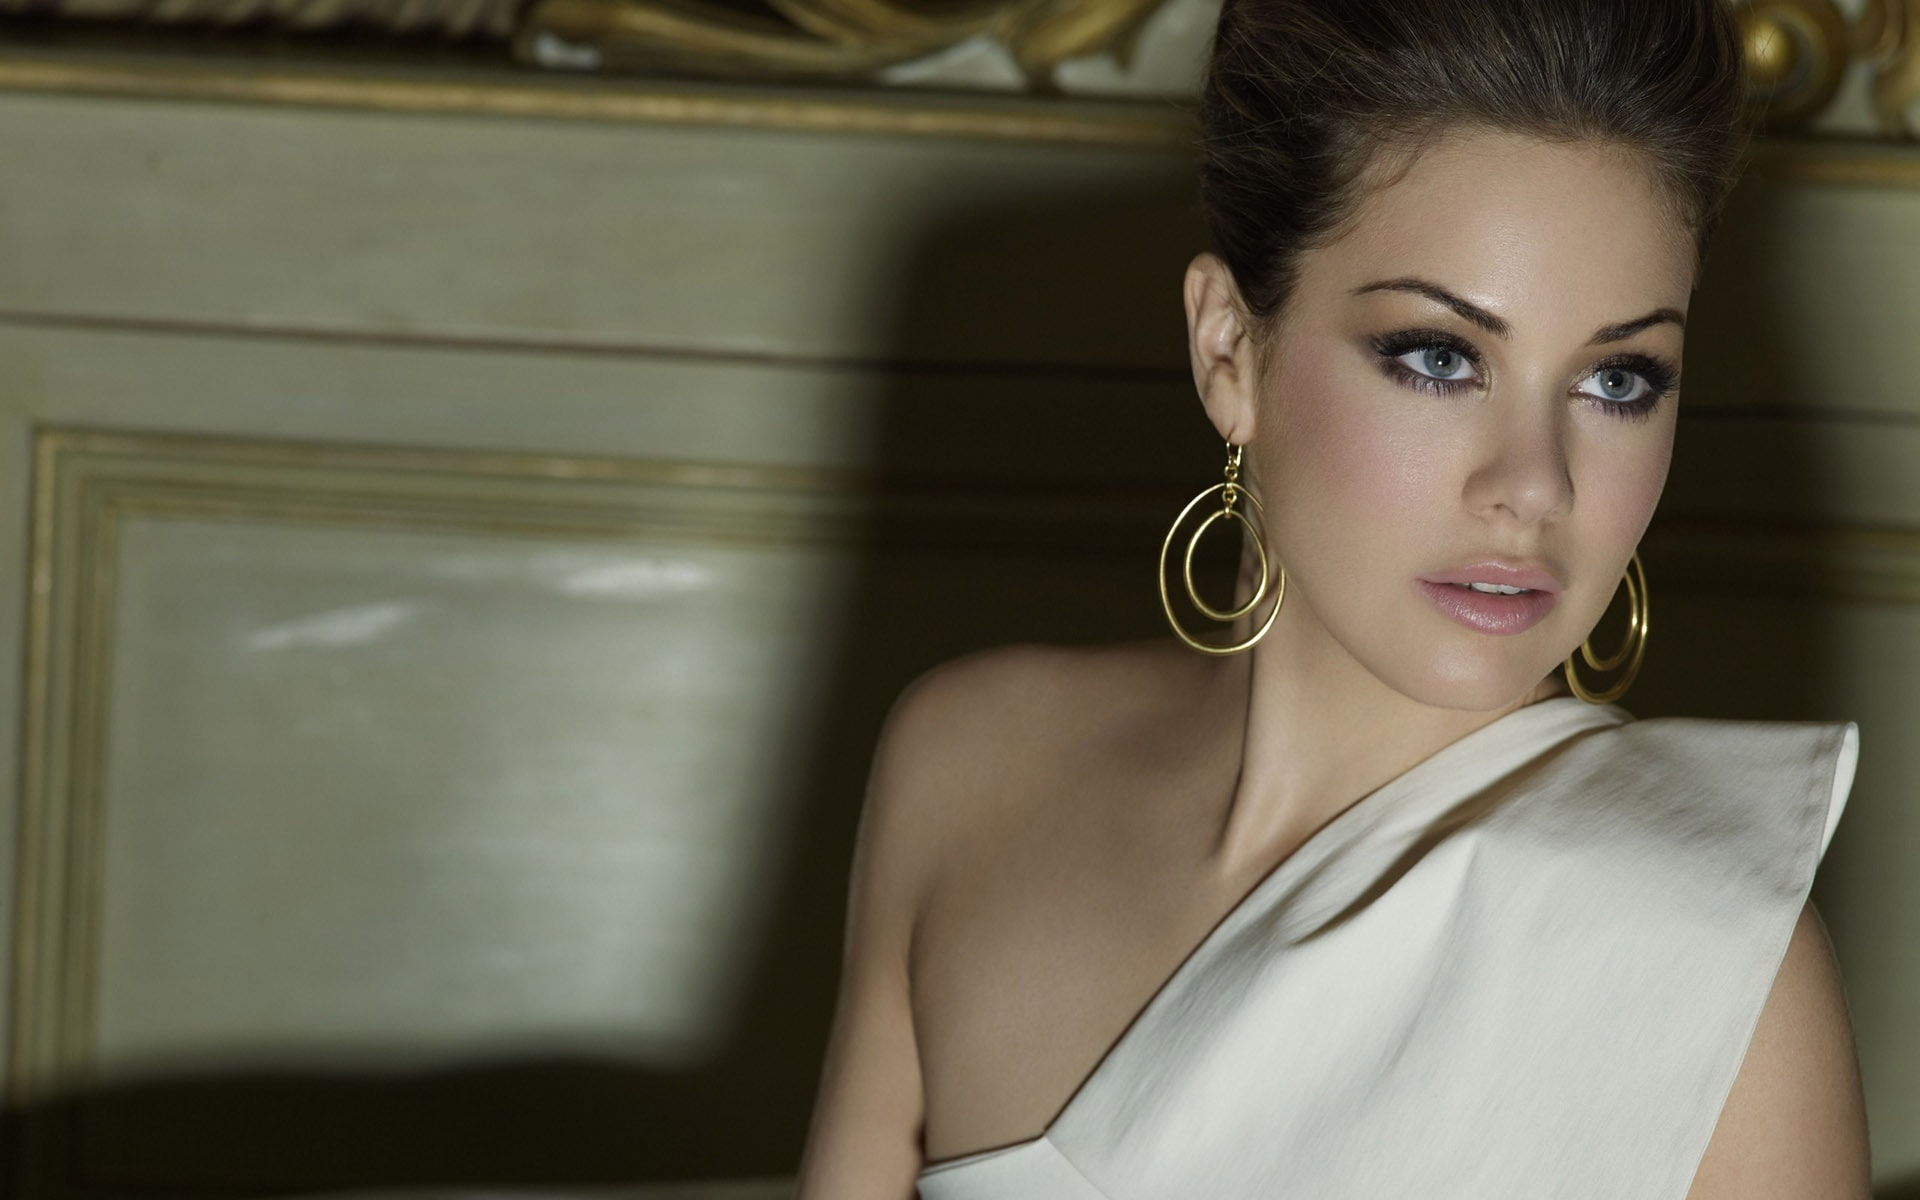 roxanne mckee makeup hd wallpaper 61560